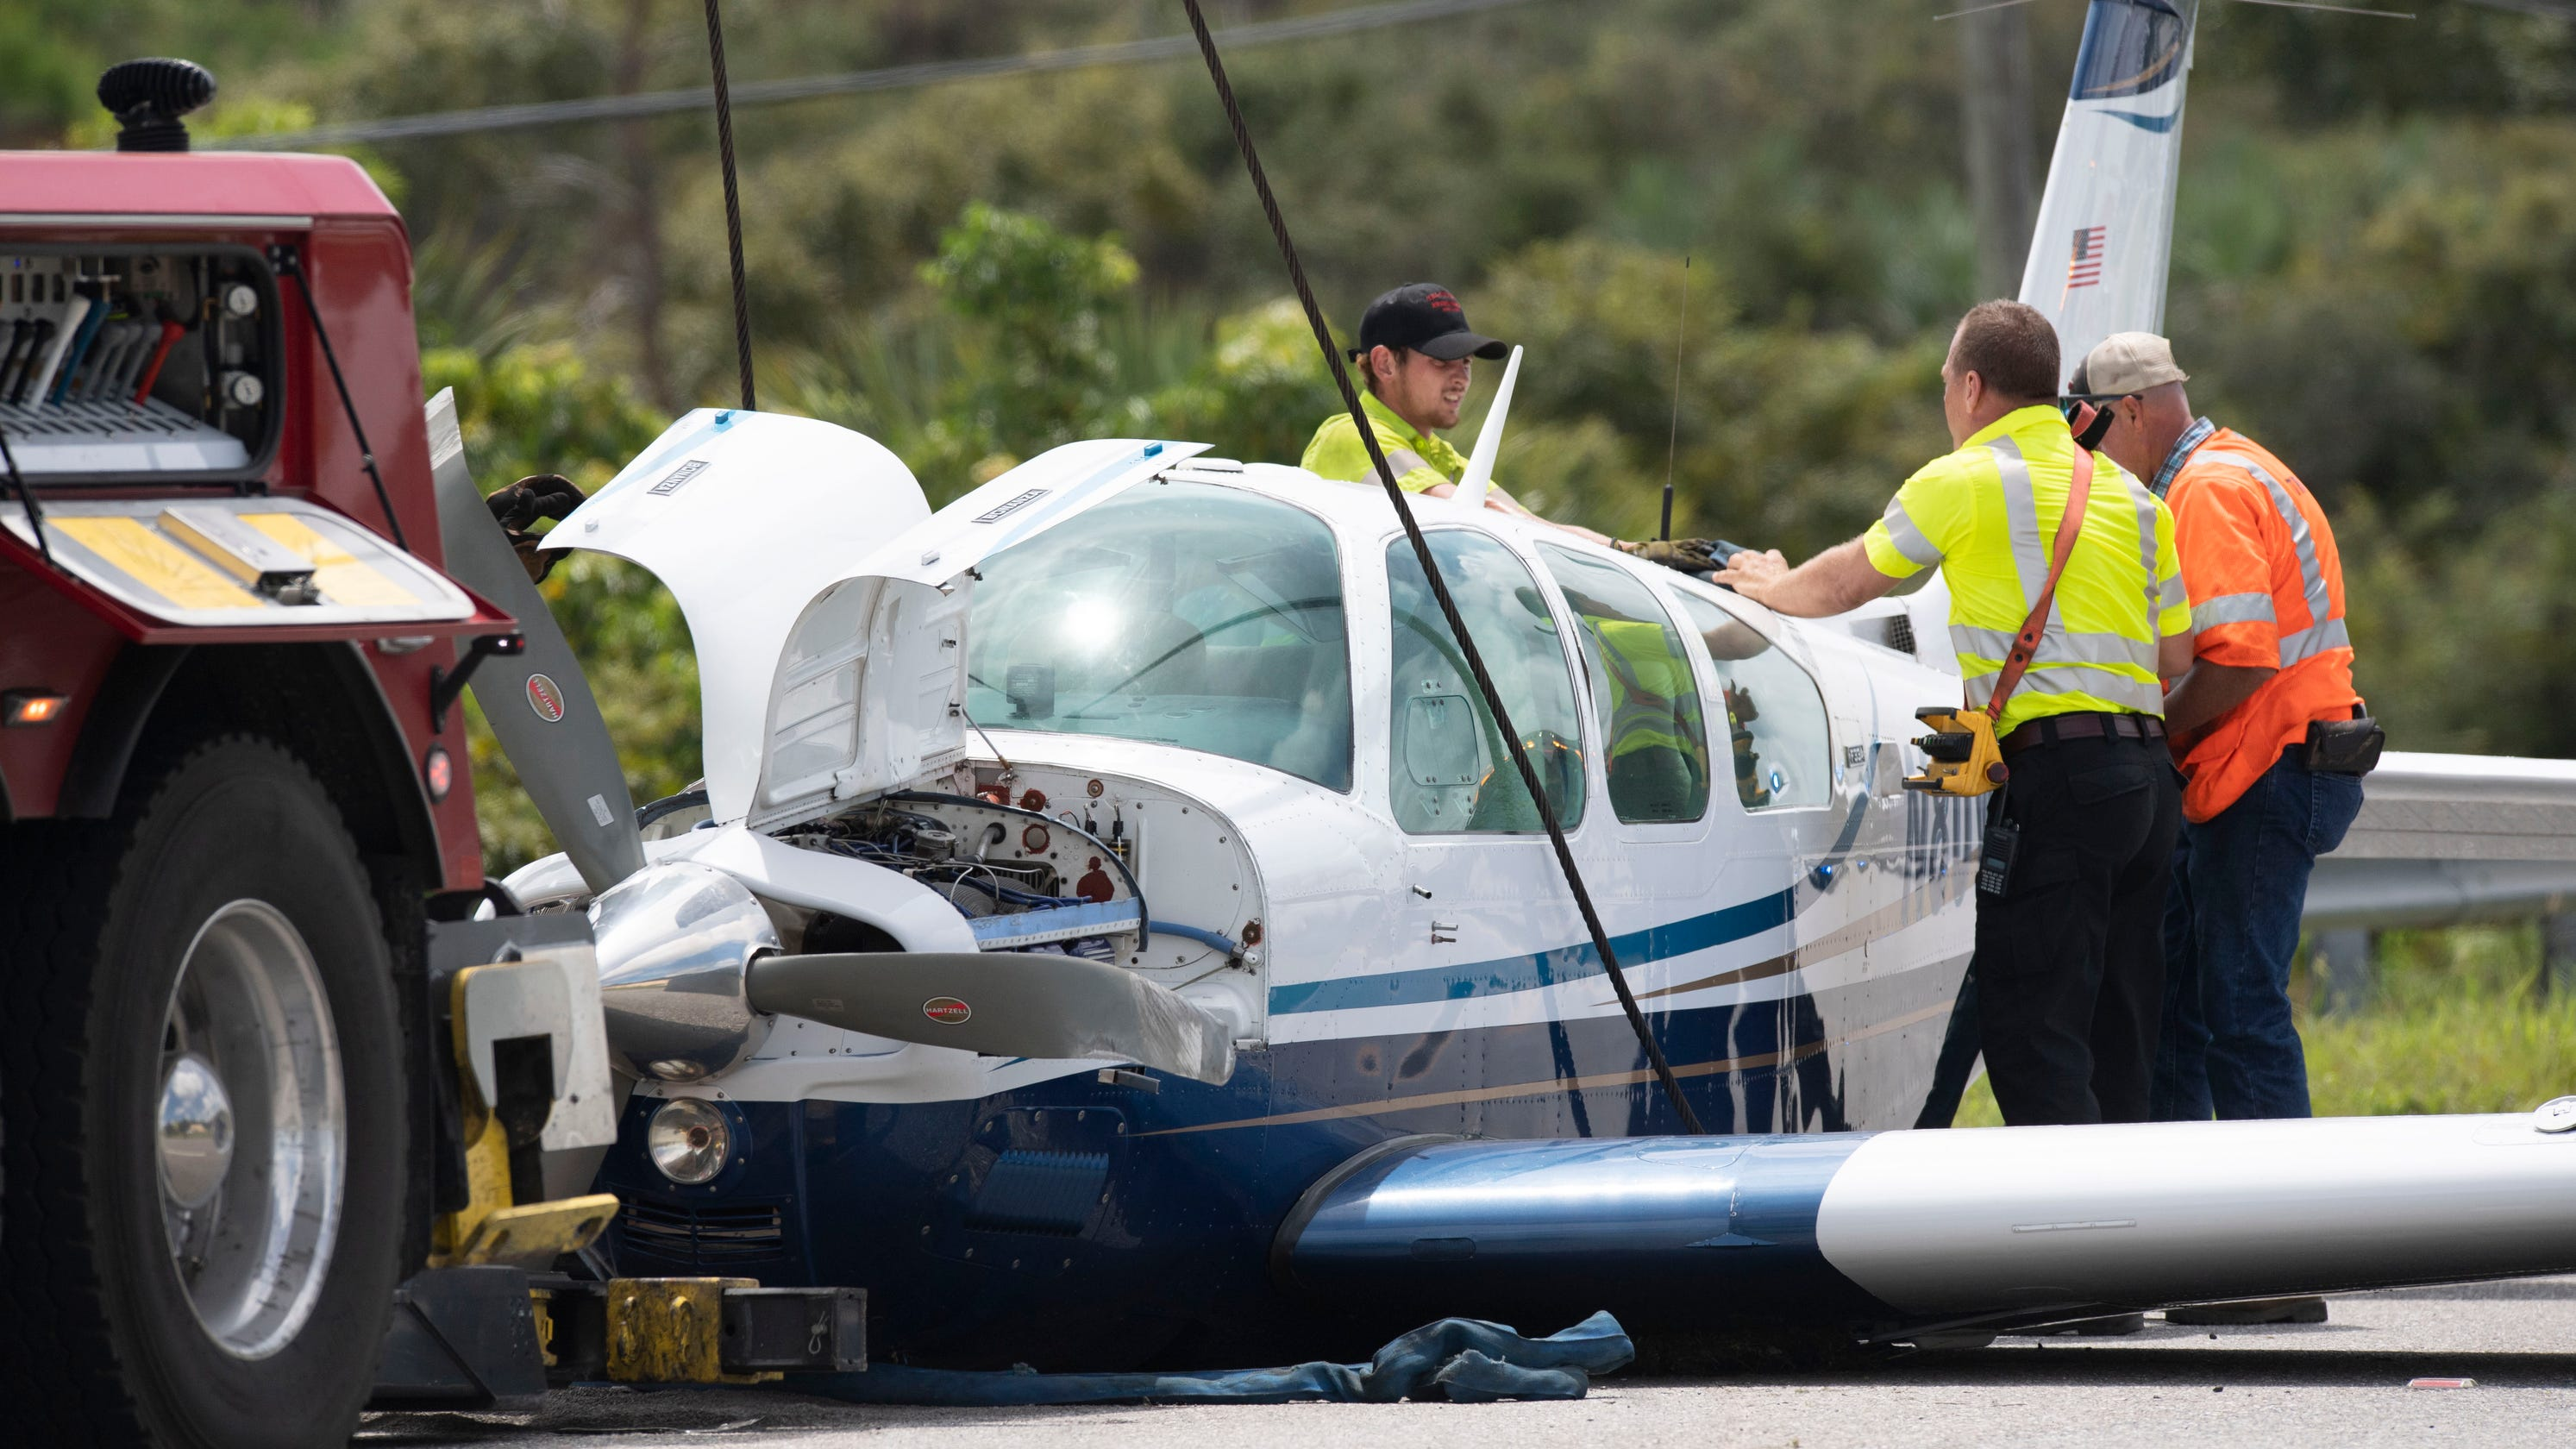 No one hurt after plane makes emergency landing in Martin County